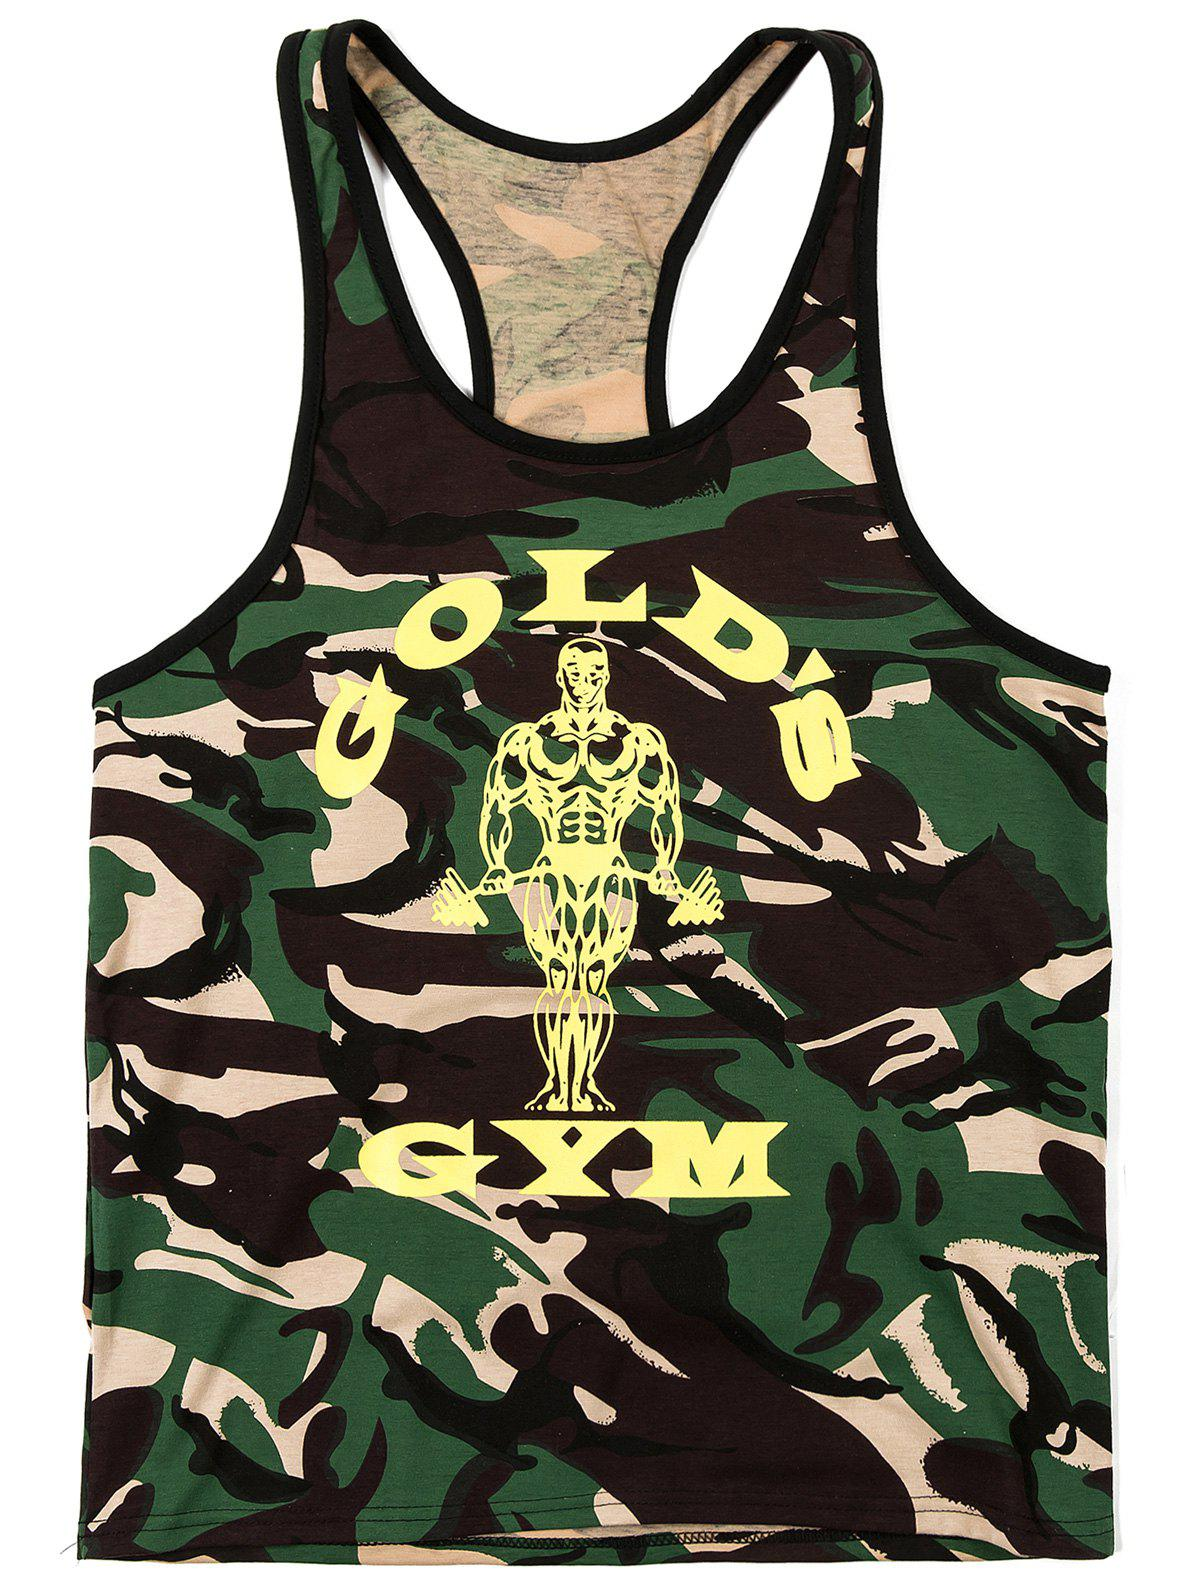 Fashion Camouflage Printed Men's Tank Top - CAMOUFLAGE 2XL